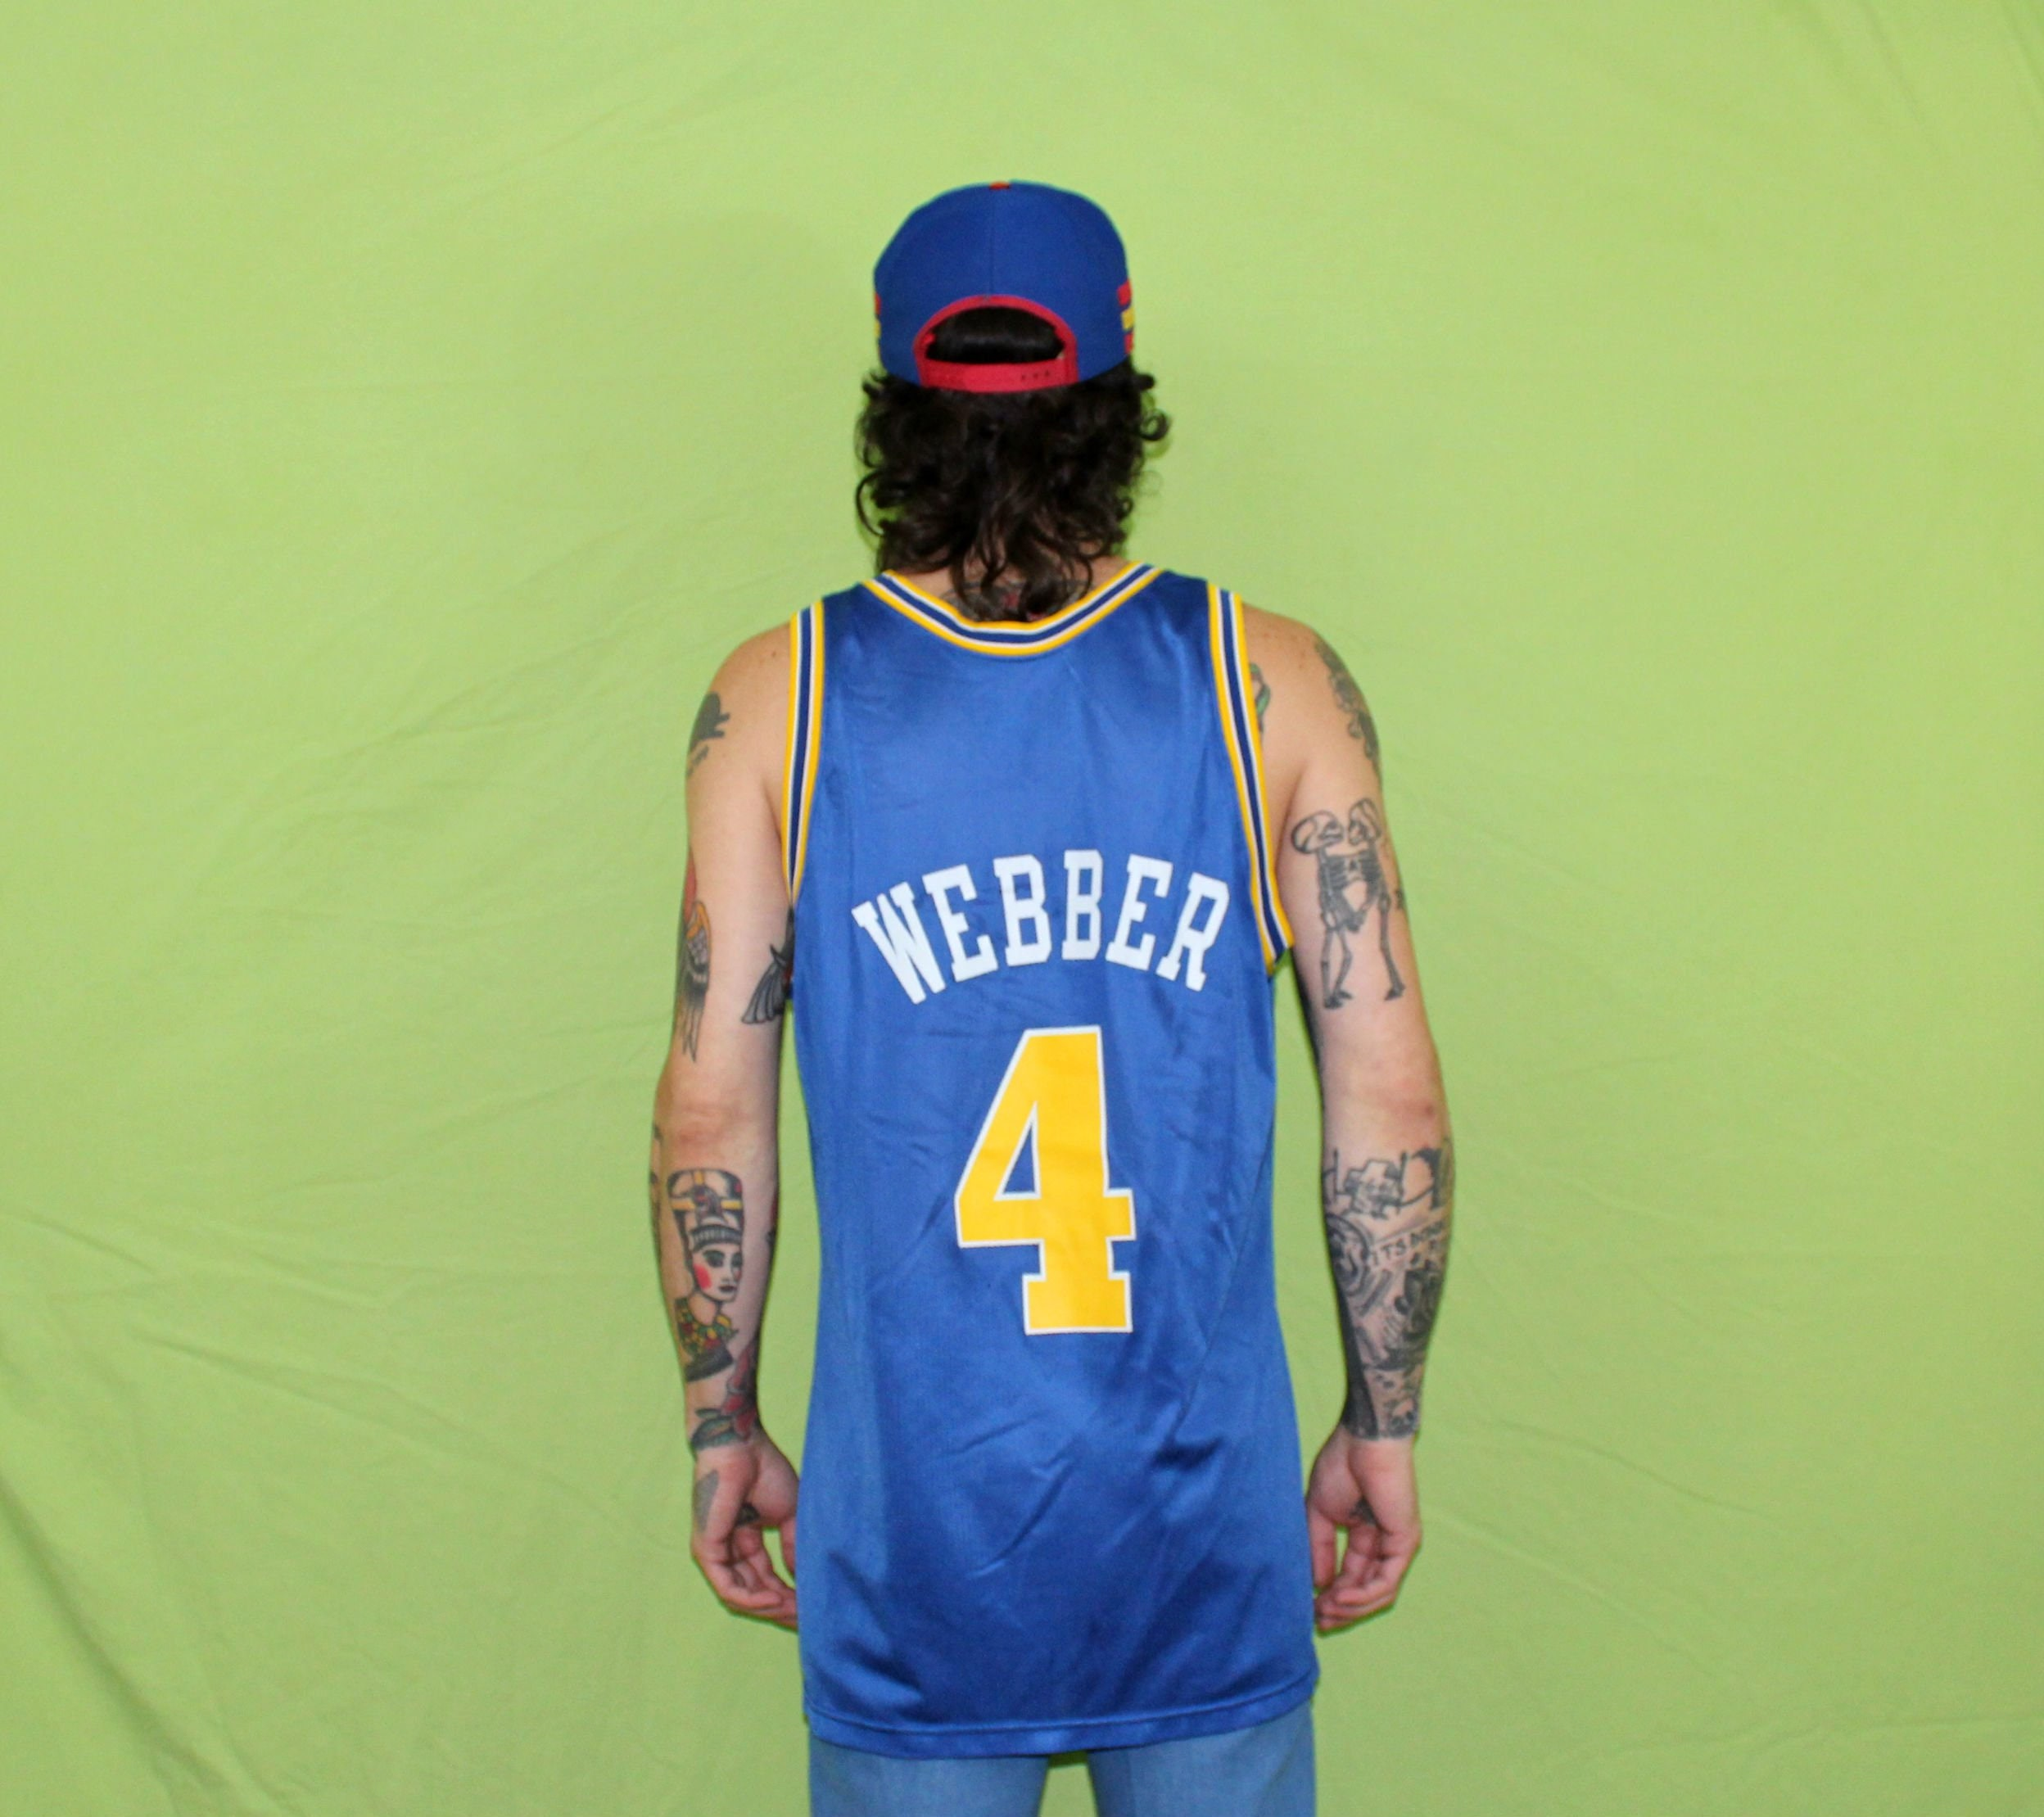 d09e13a490f ... promo code for chris webber vintage nba jersey. golden state warriors  retro old school 90s